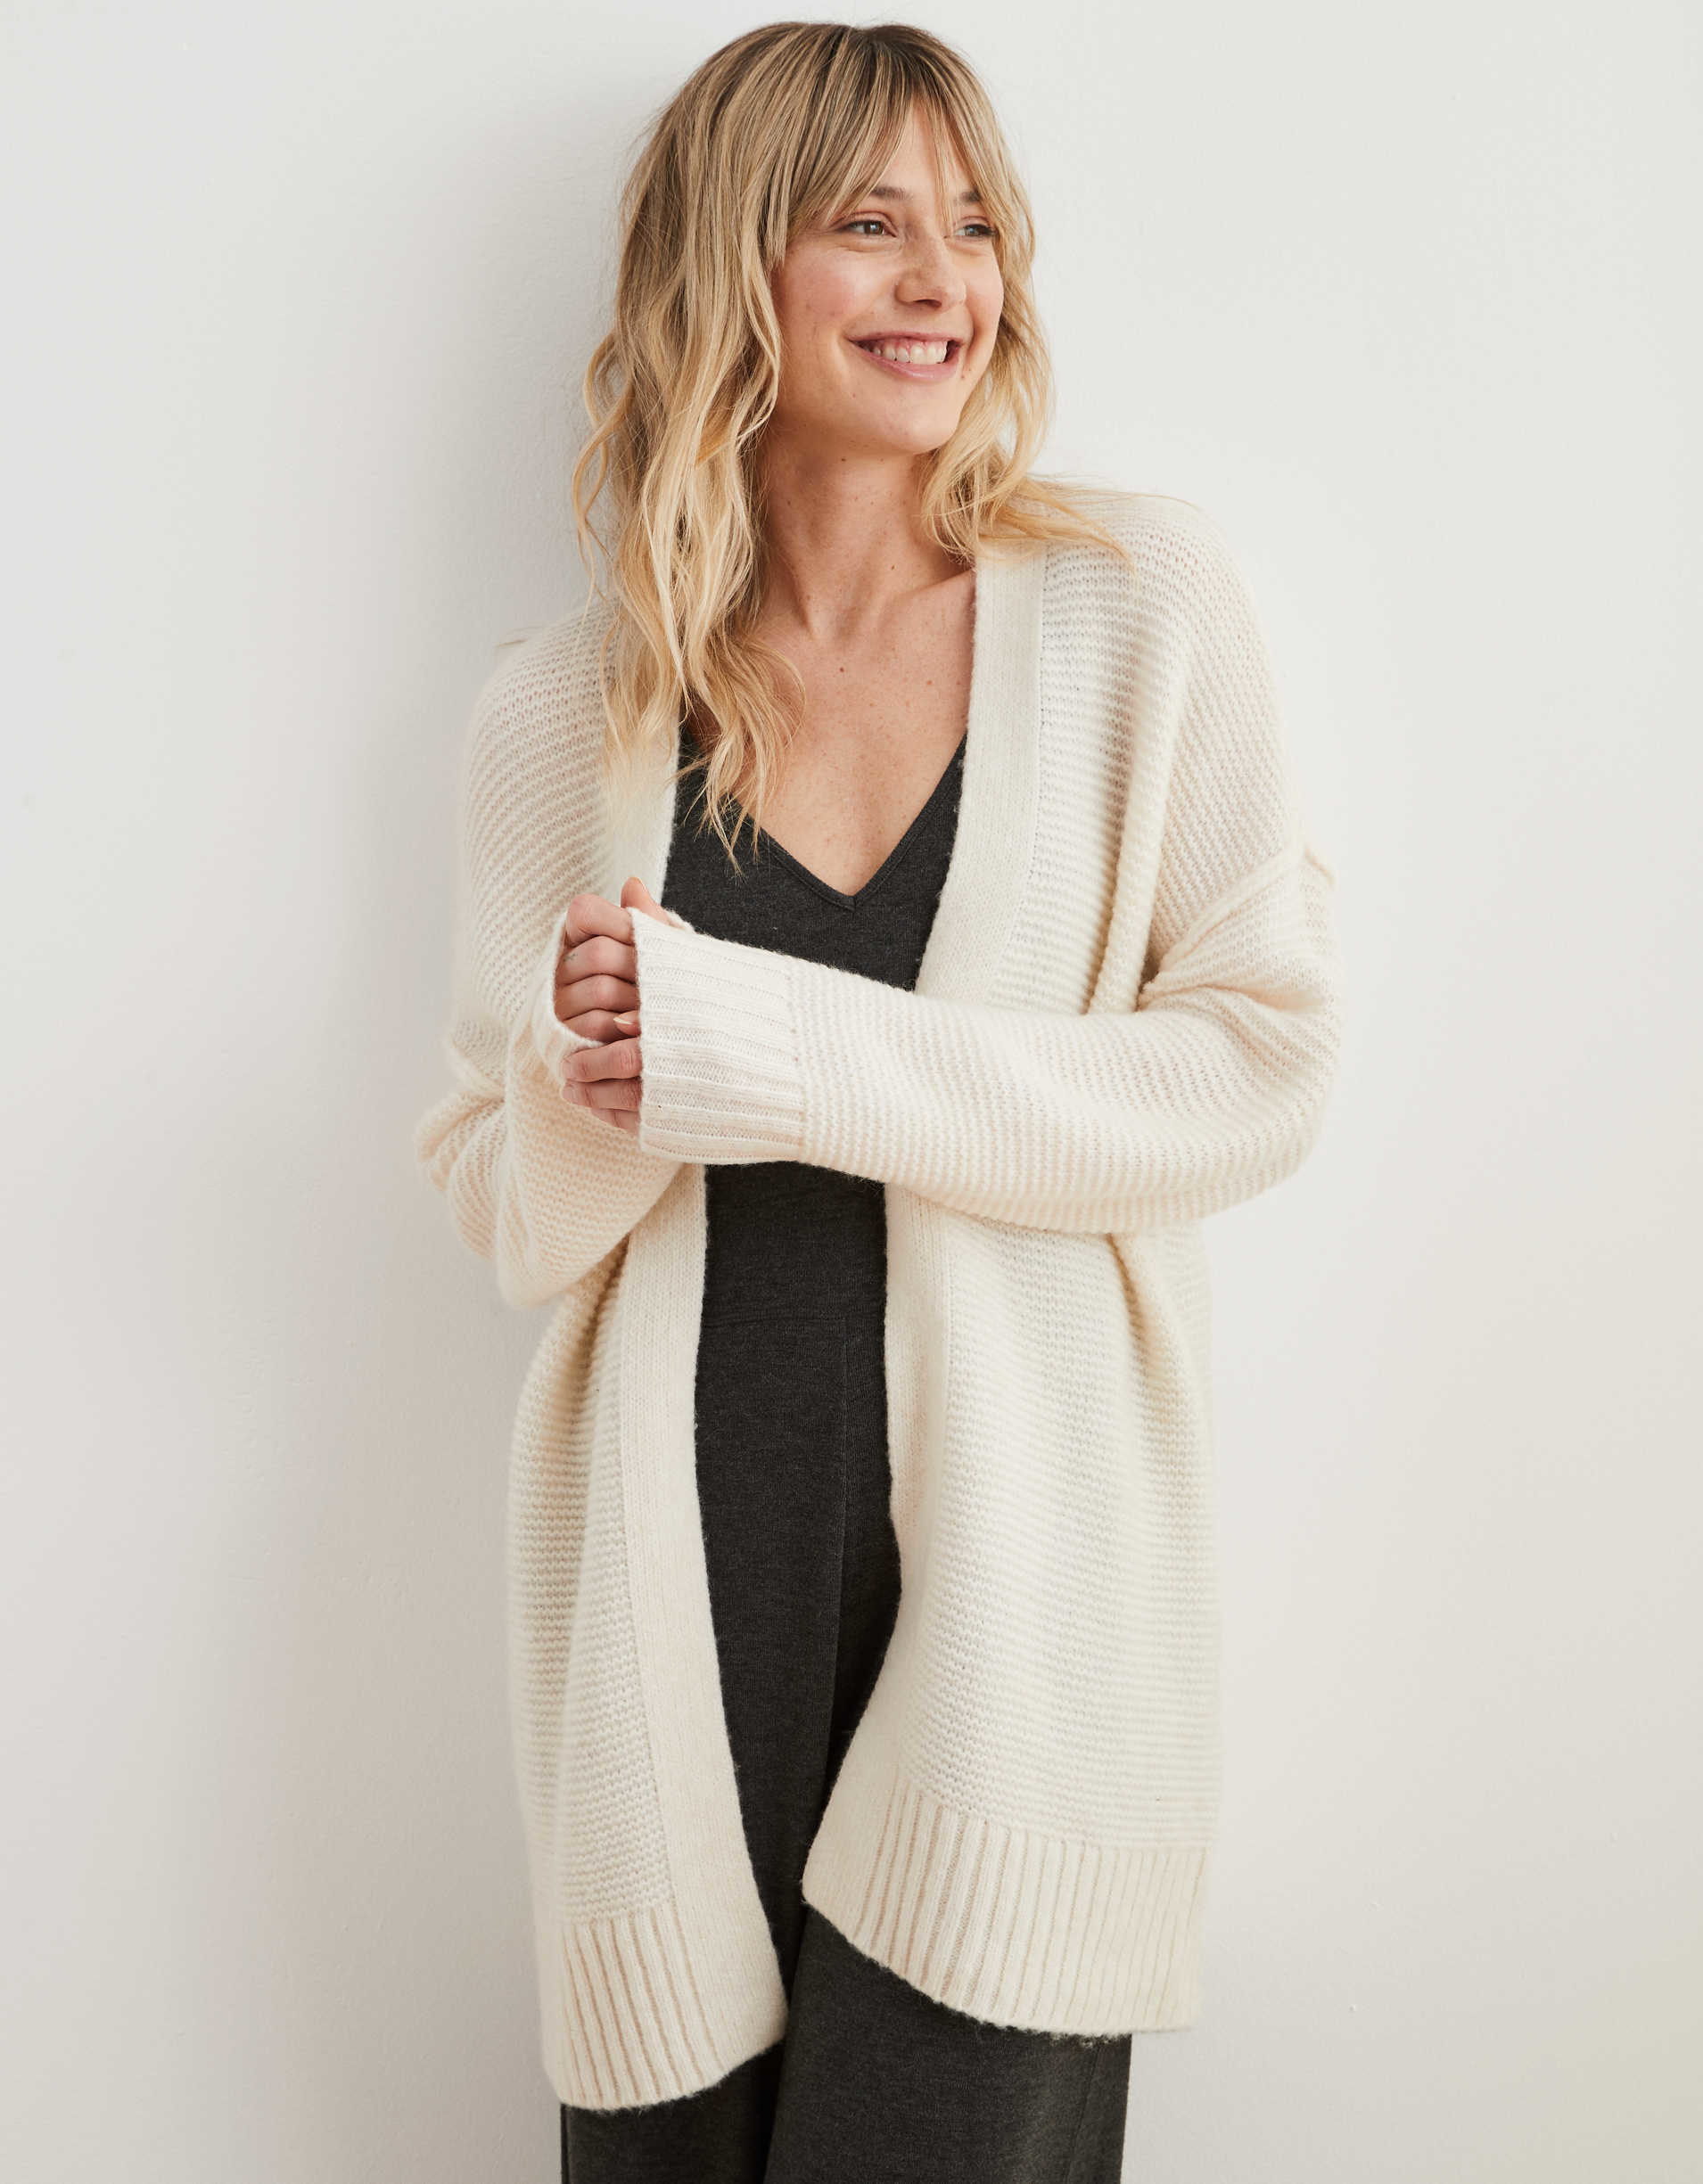 A model wears the Aerie Easy cardigan in the color natural